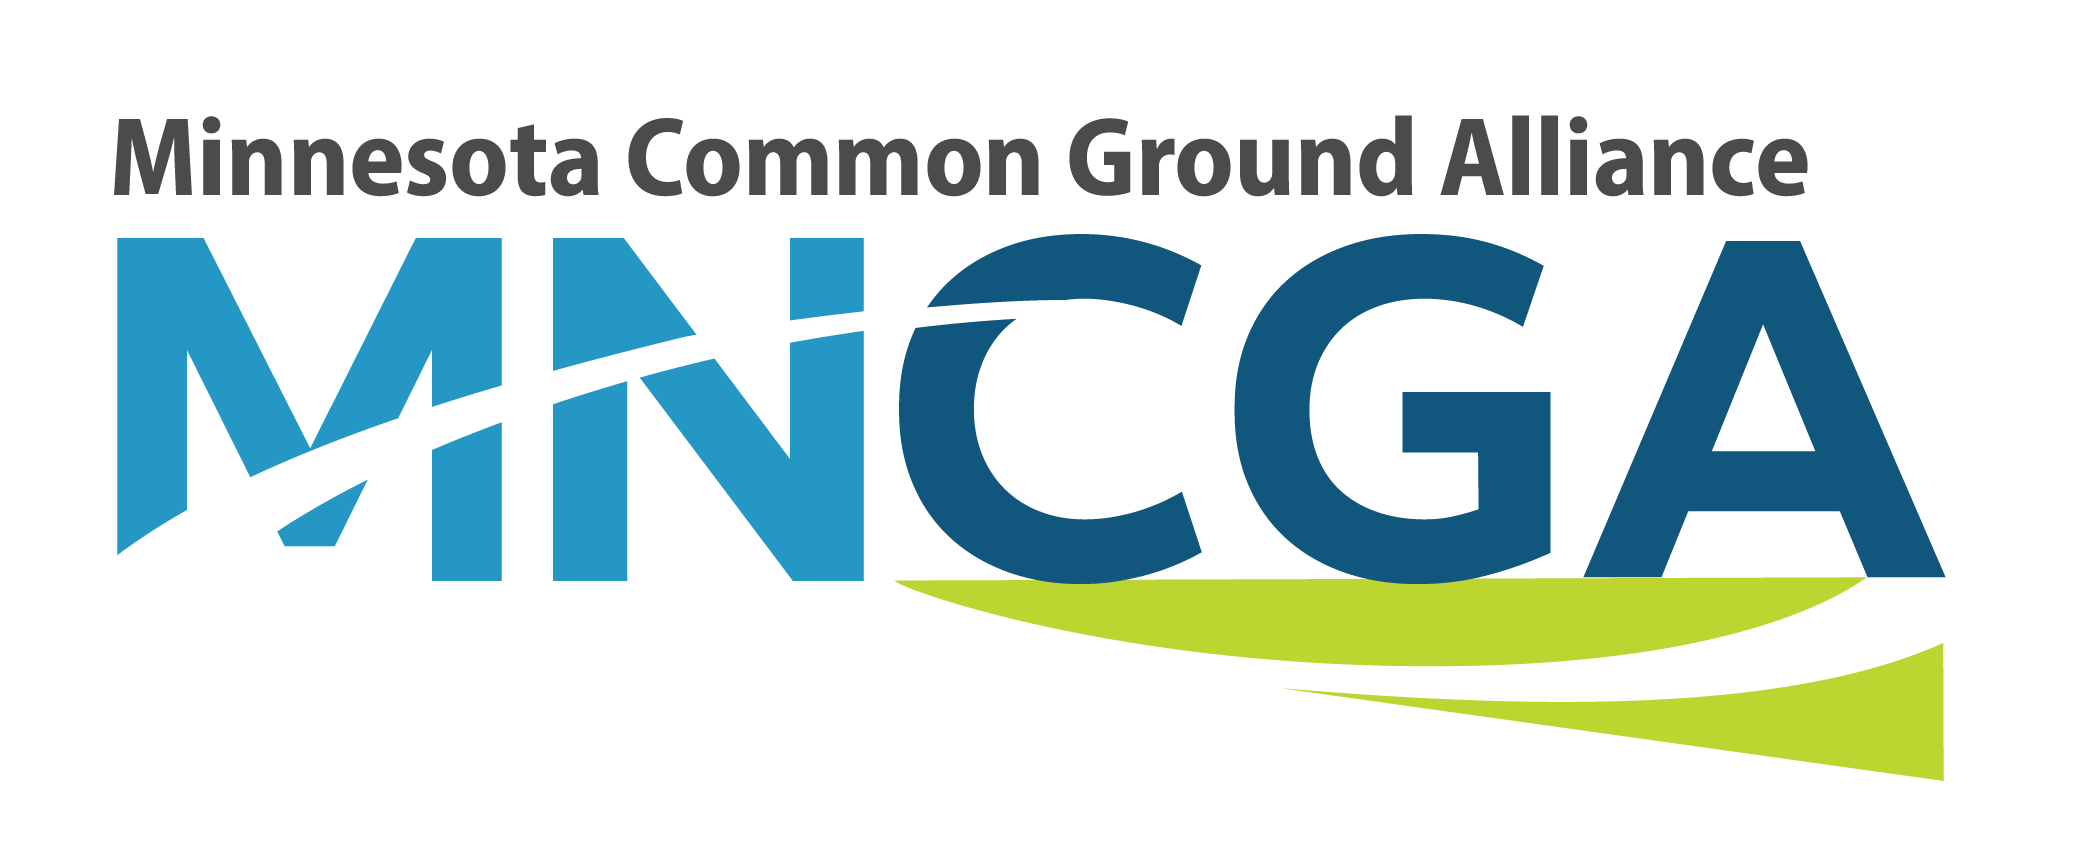 Minnesota Common Ground Alliance